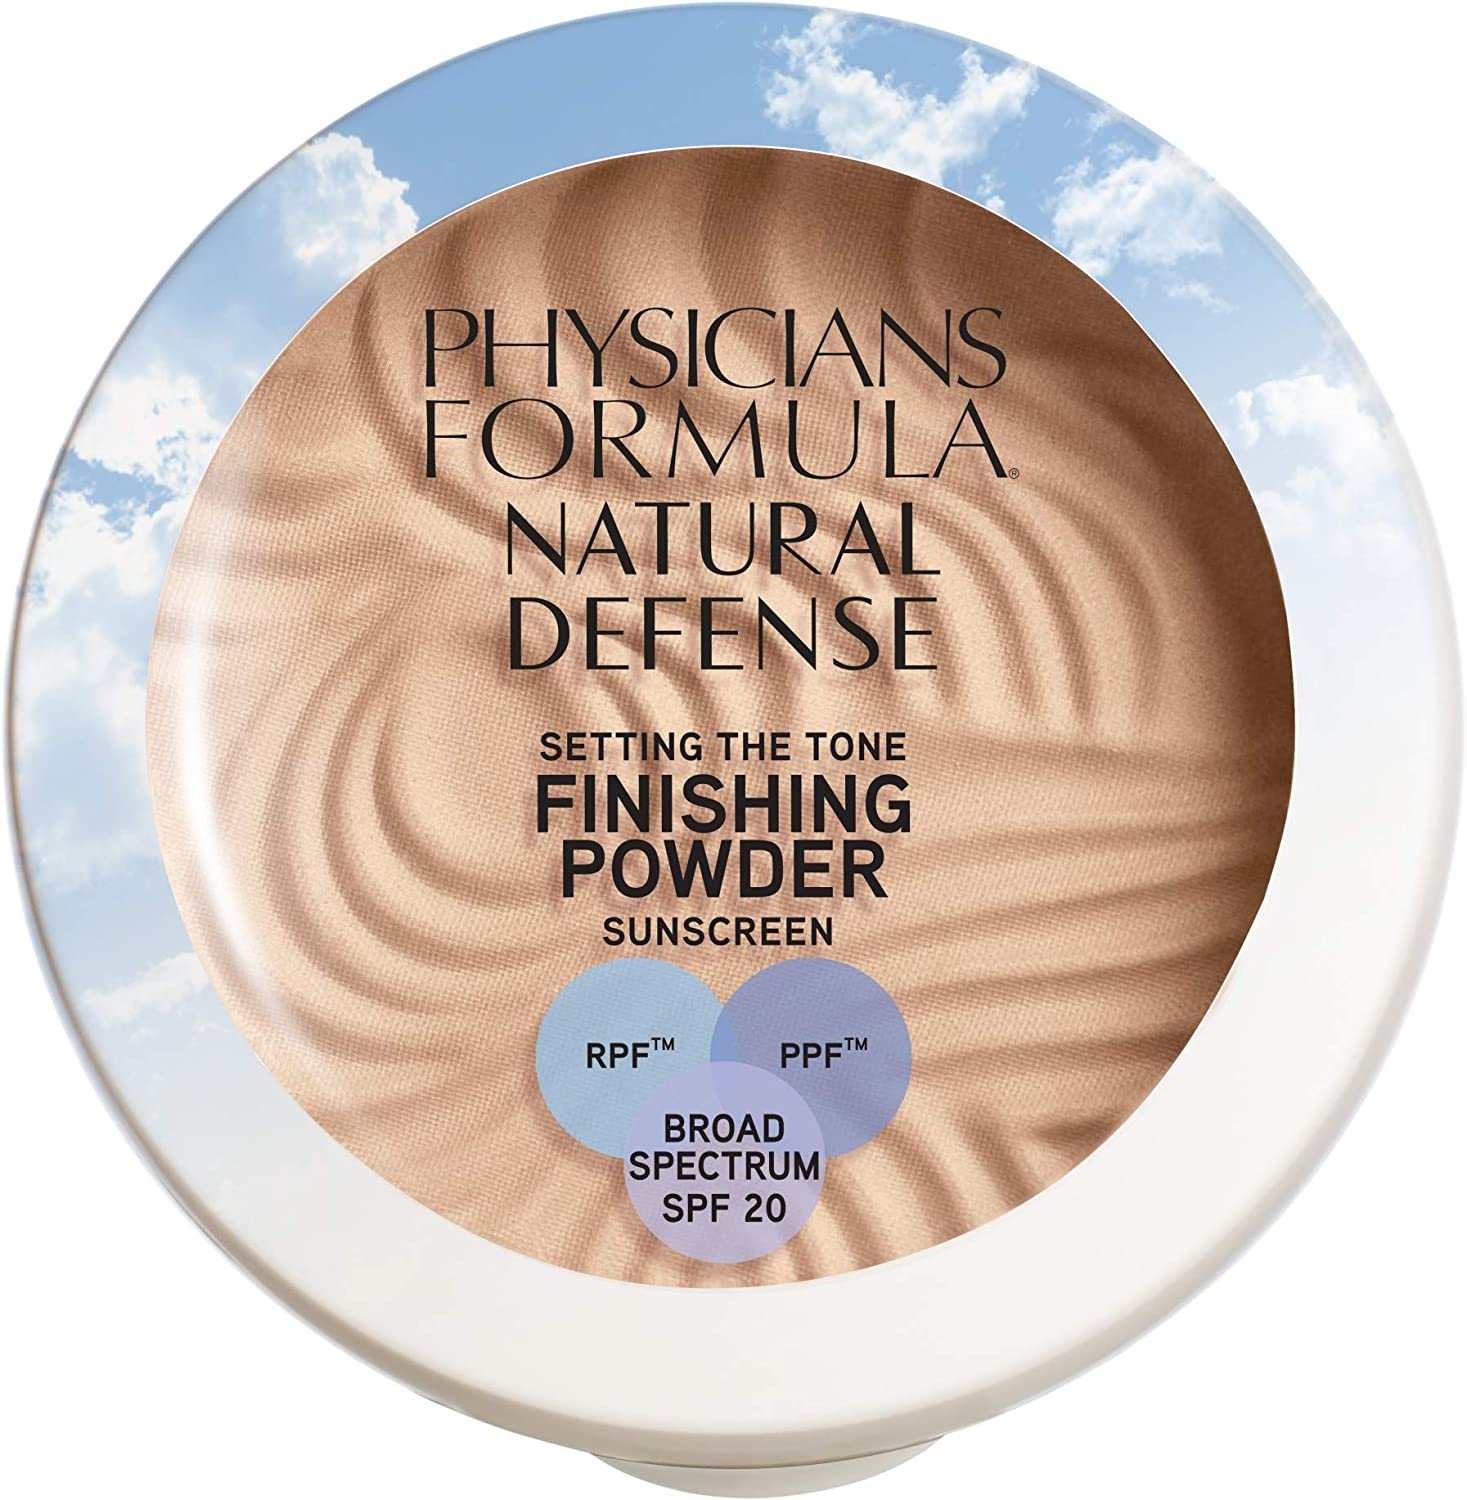 Physicians Formula Natural Defense Setting the Tone Finishing Powder SPF 20, Fair, 0.35 Ounce